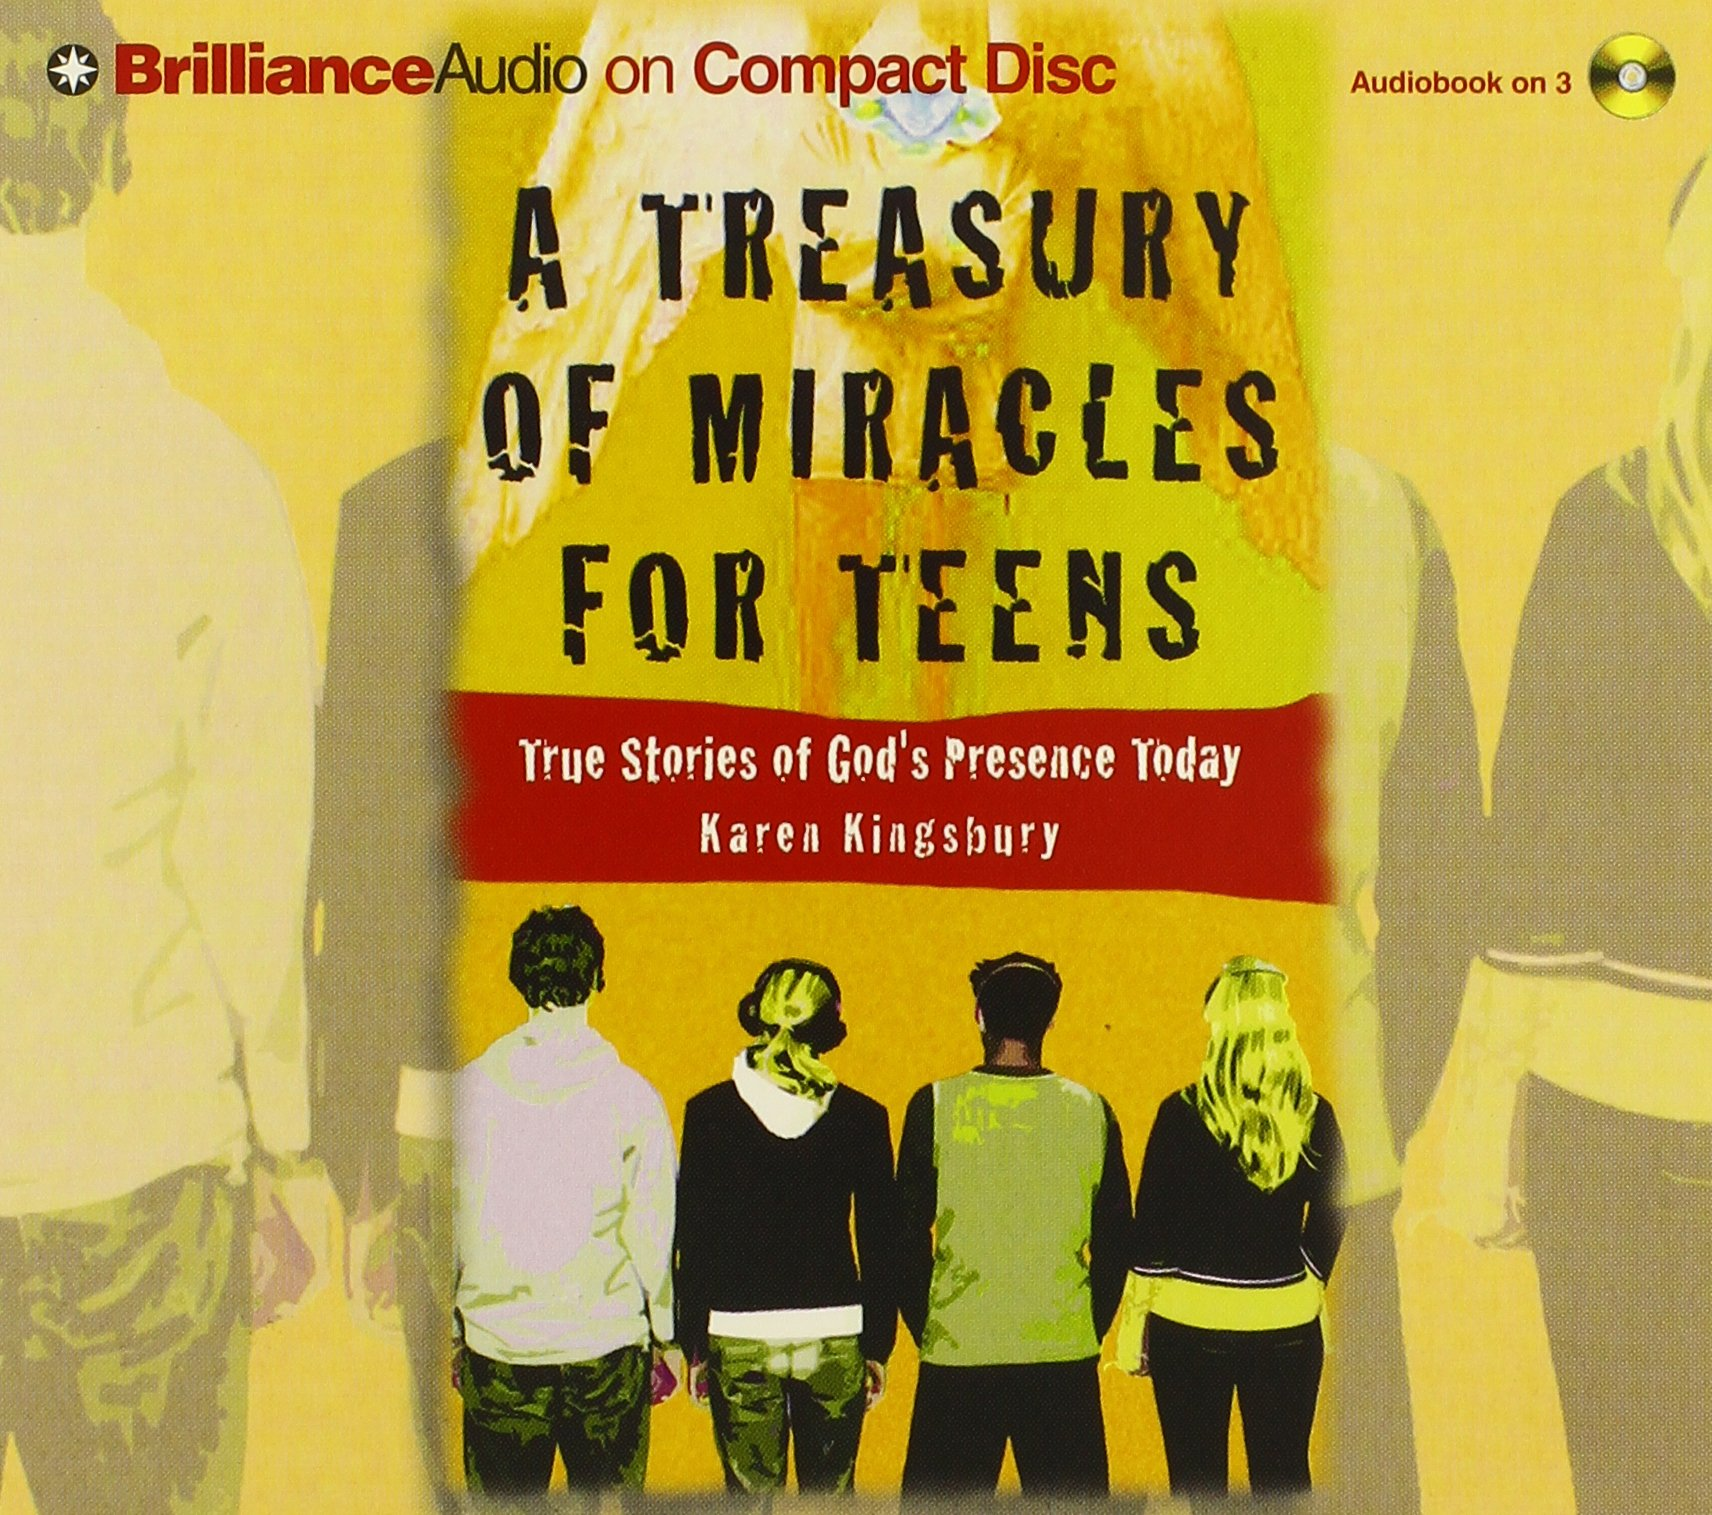 Treasury of Miracles for Teens, A: True Stories of God's Presence Today